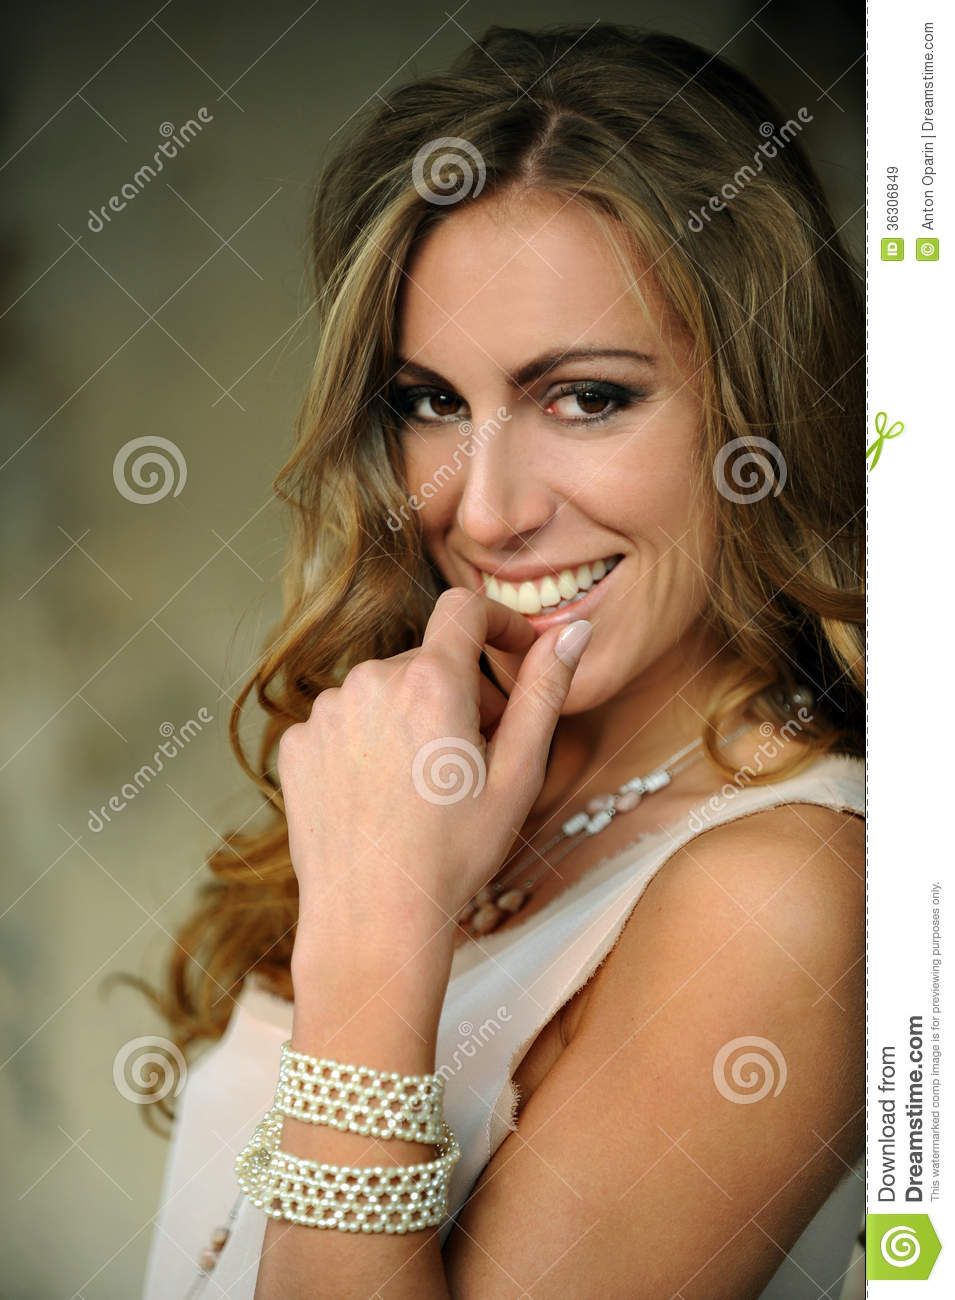 Young Girl Flirting In NYC Subway Royalty Free Stock